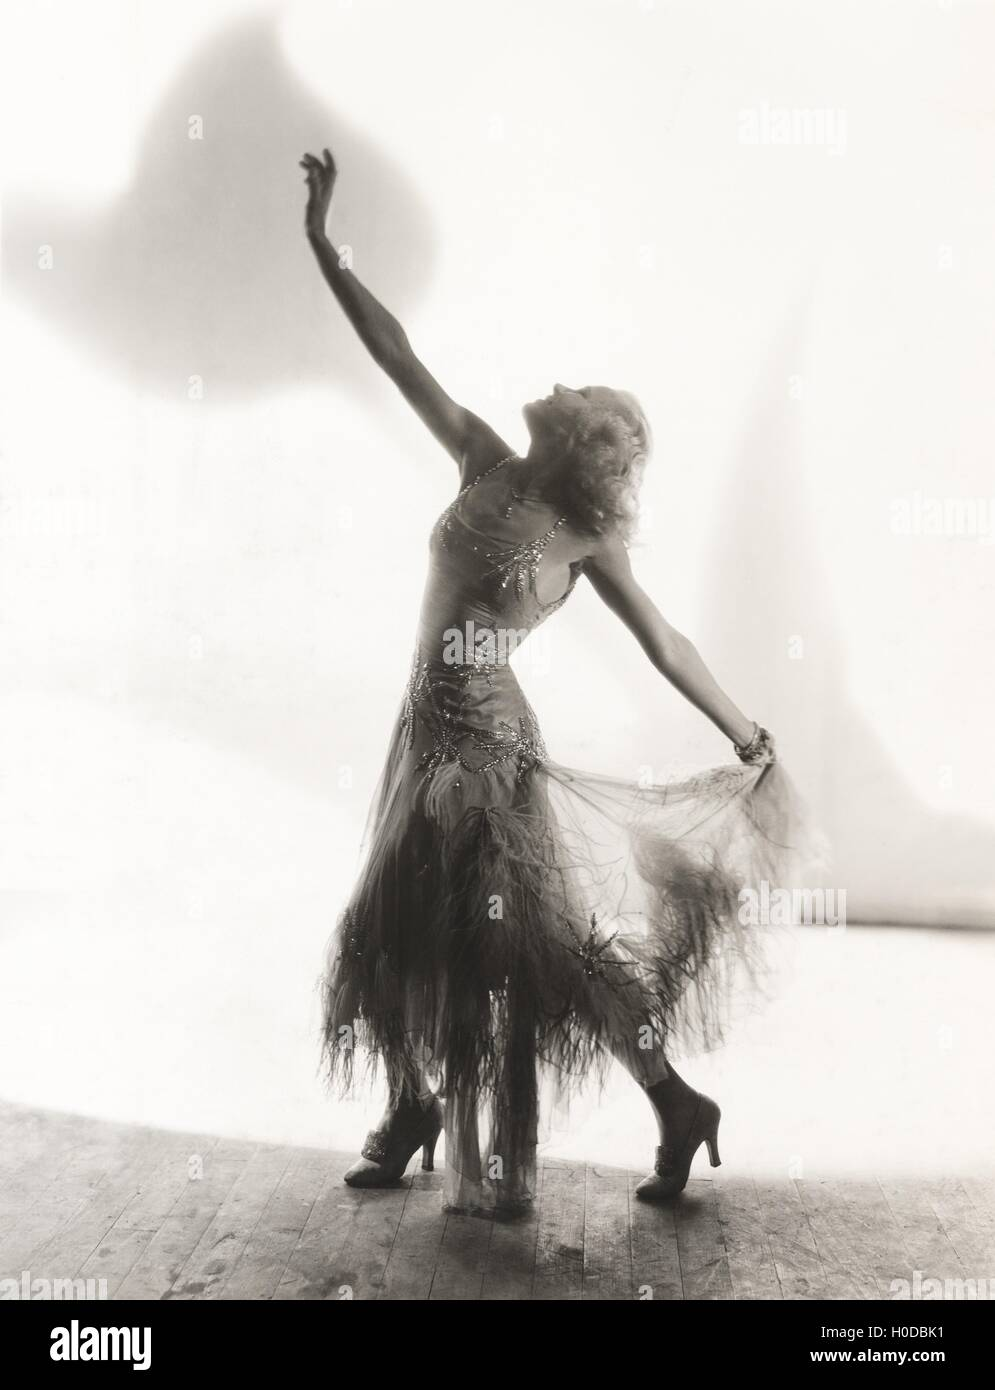 Dancer with arms outstretched against white background Stock Photo